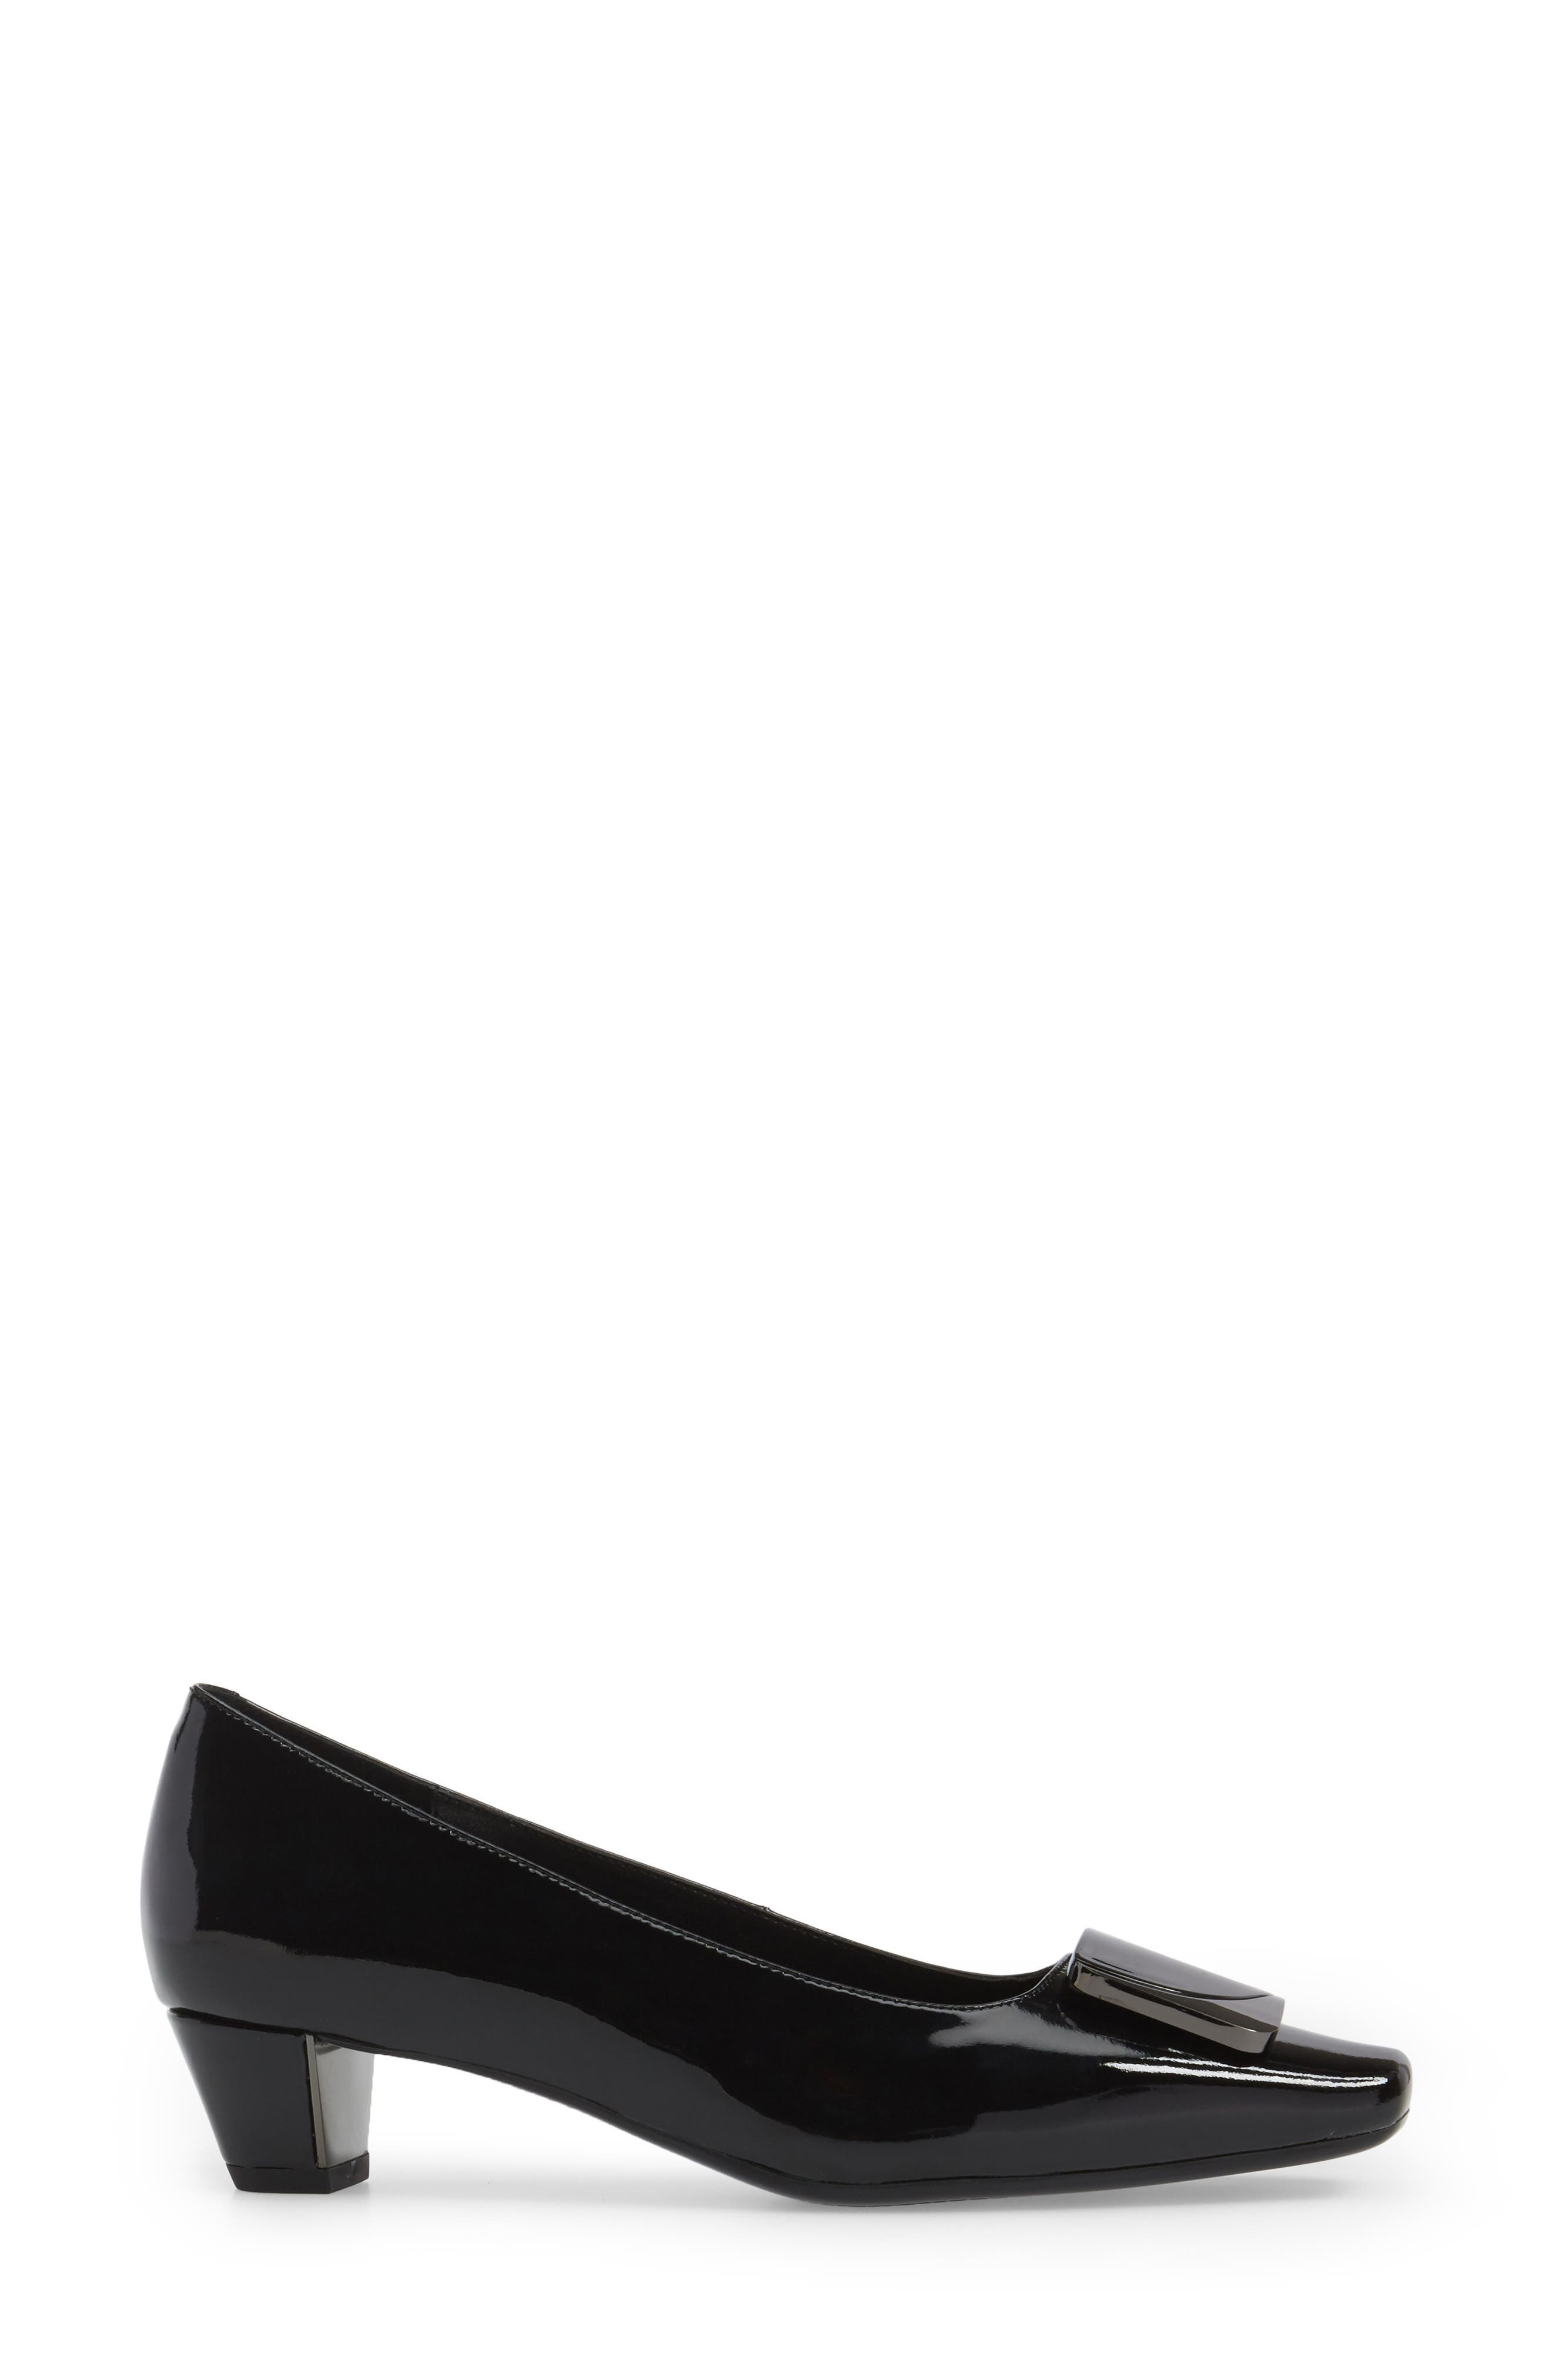 Celine Sandal,                             Alternate thumbnail 5, color,